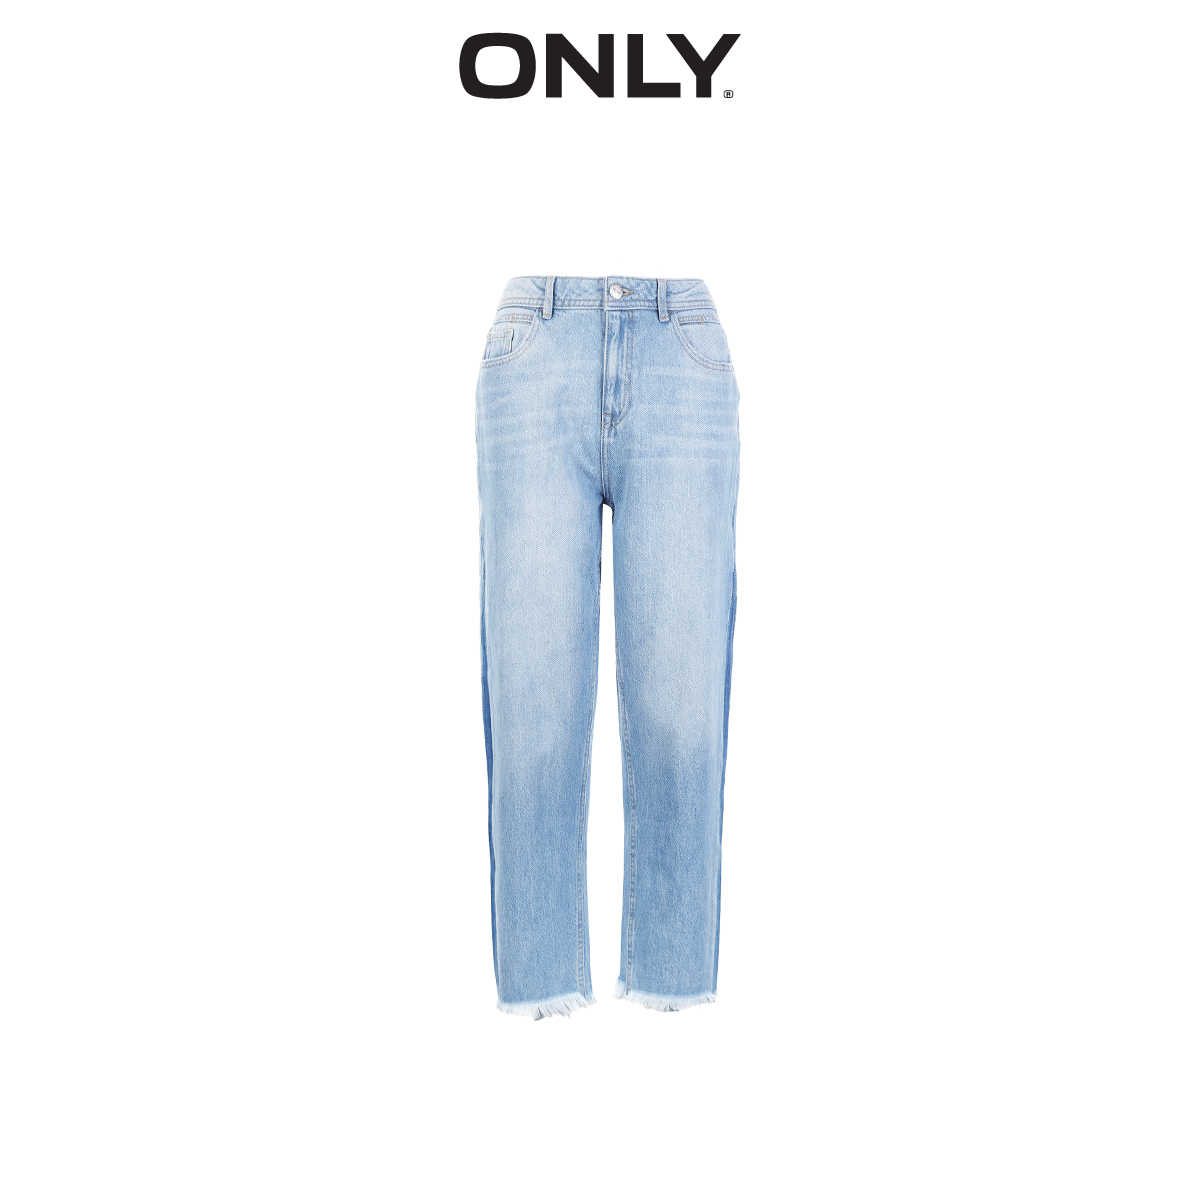 Alleen Zomer Vrouwen Loose Fit Gedragen Fading Bf Stijl Straight Crop Jeans | 119149646